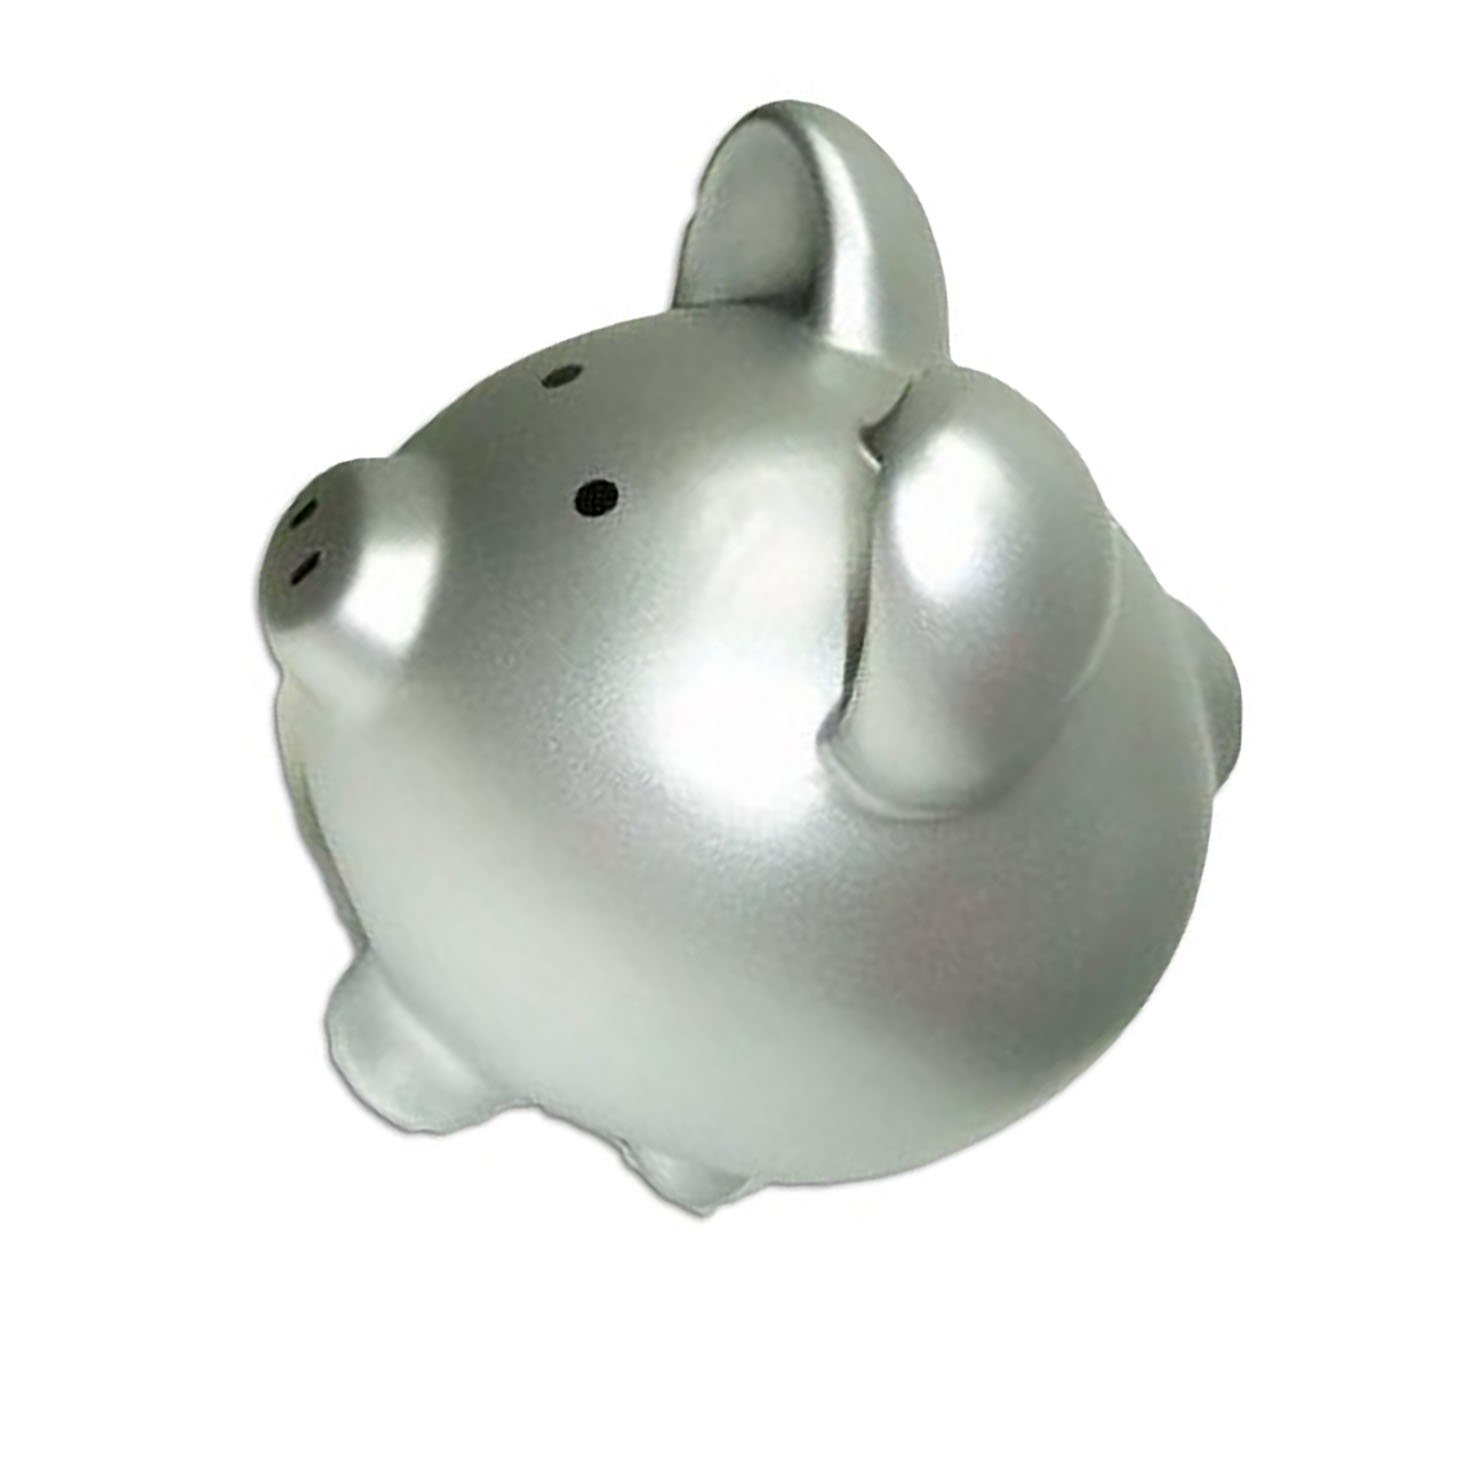 "Completely Custom {13"" x 13'' Inch} 1 Single Large, Coin & Cash Bank Decoration for Holding Money, Made of Grade A Genuine Ceramic w/ Contemporary Solid Matte Bank Piggy Style {Silver & Black}"